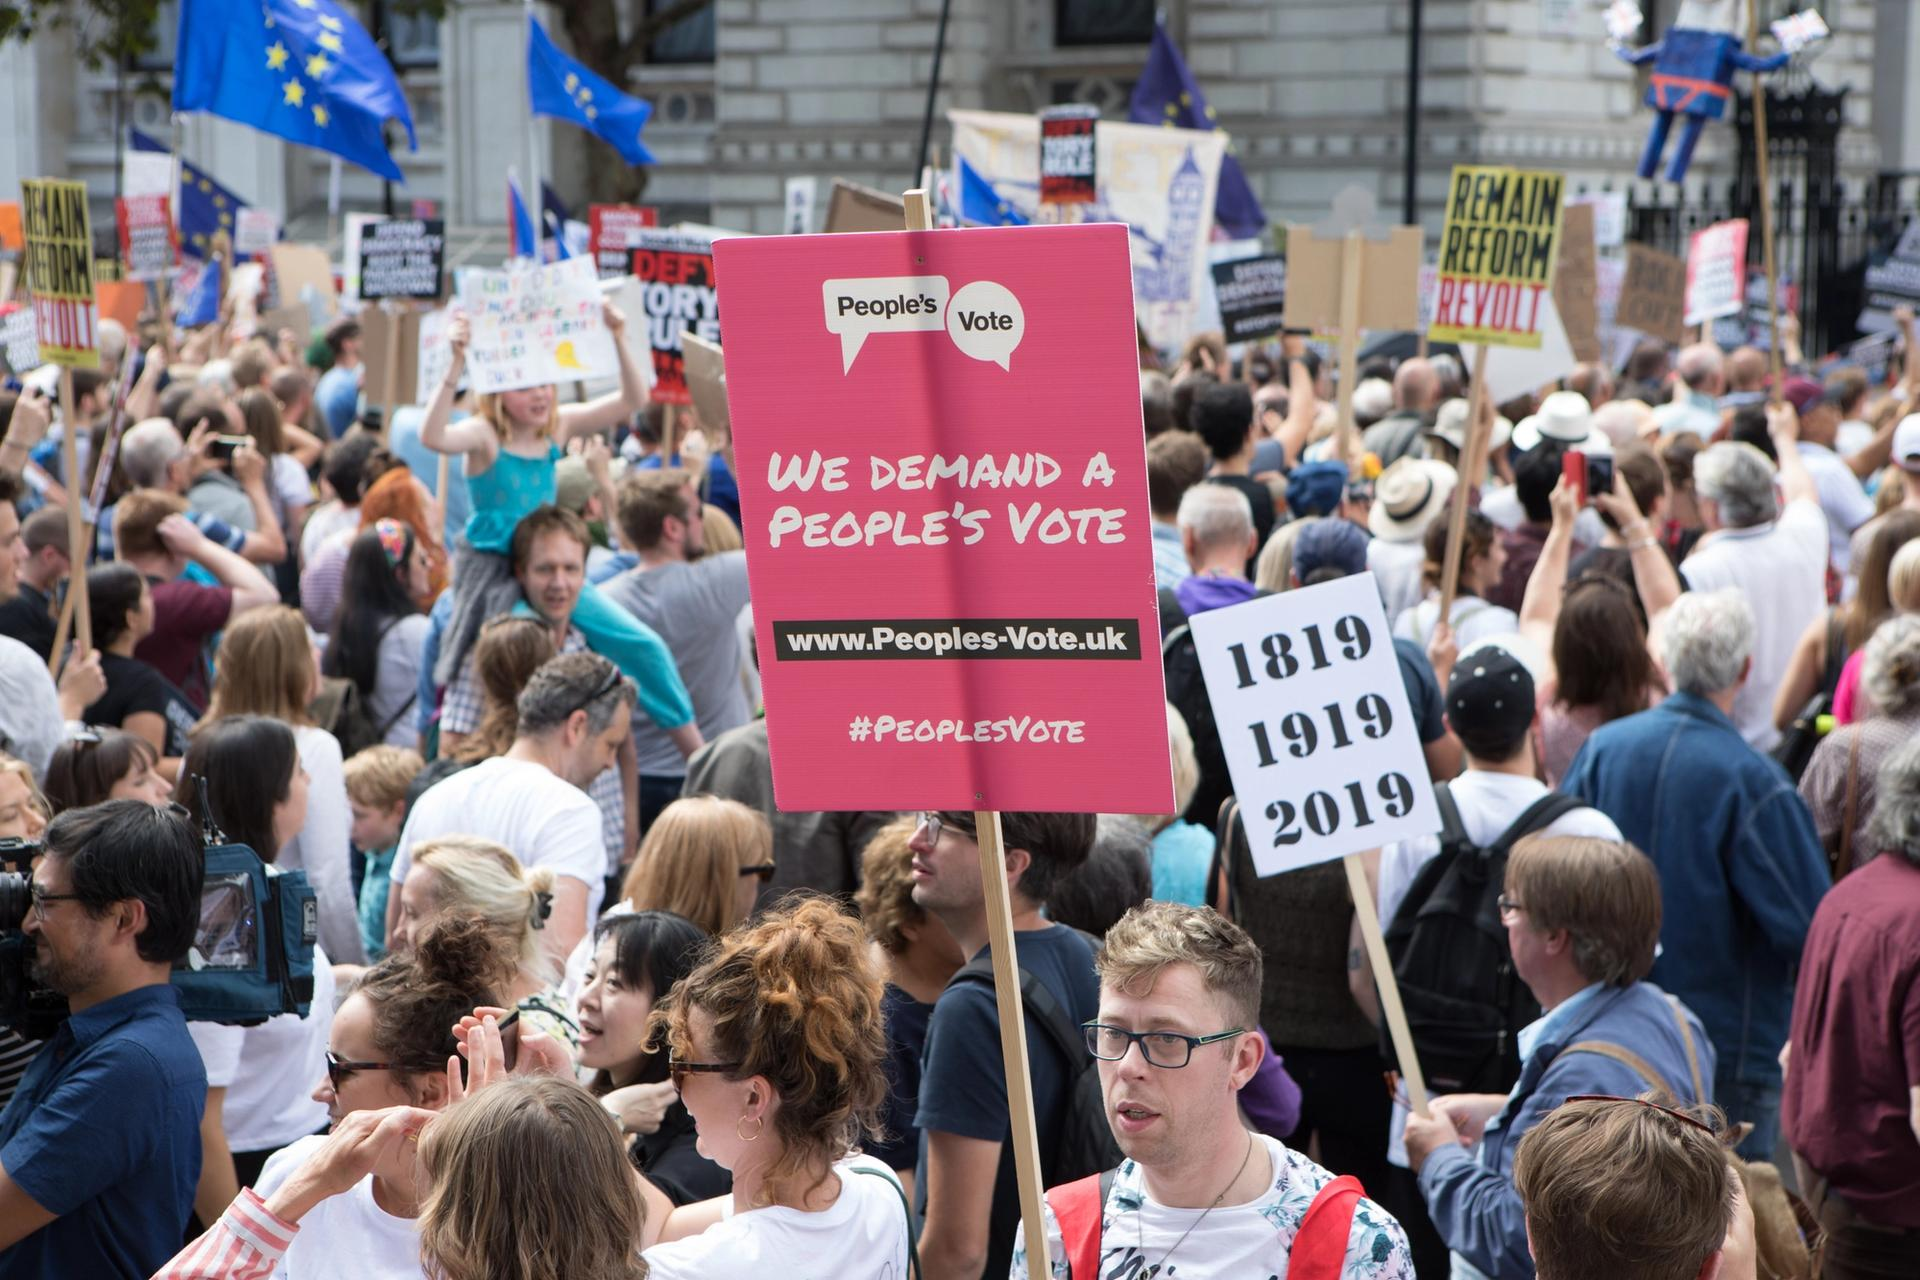 Protestors in London on 31 August at a march against UK prime minister Boris Johnson's decision to suspend parliament Photo: David Owens